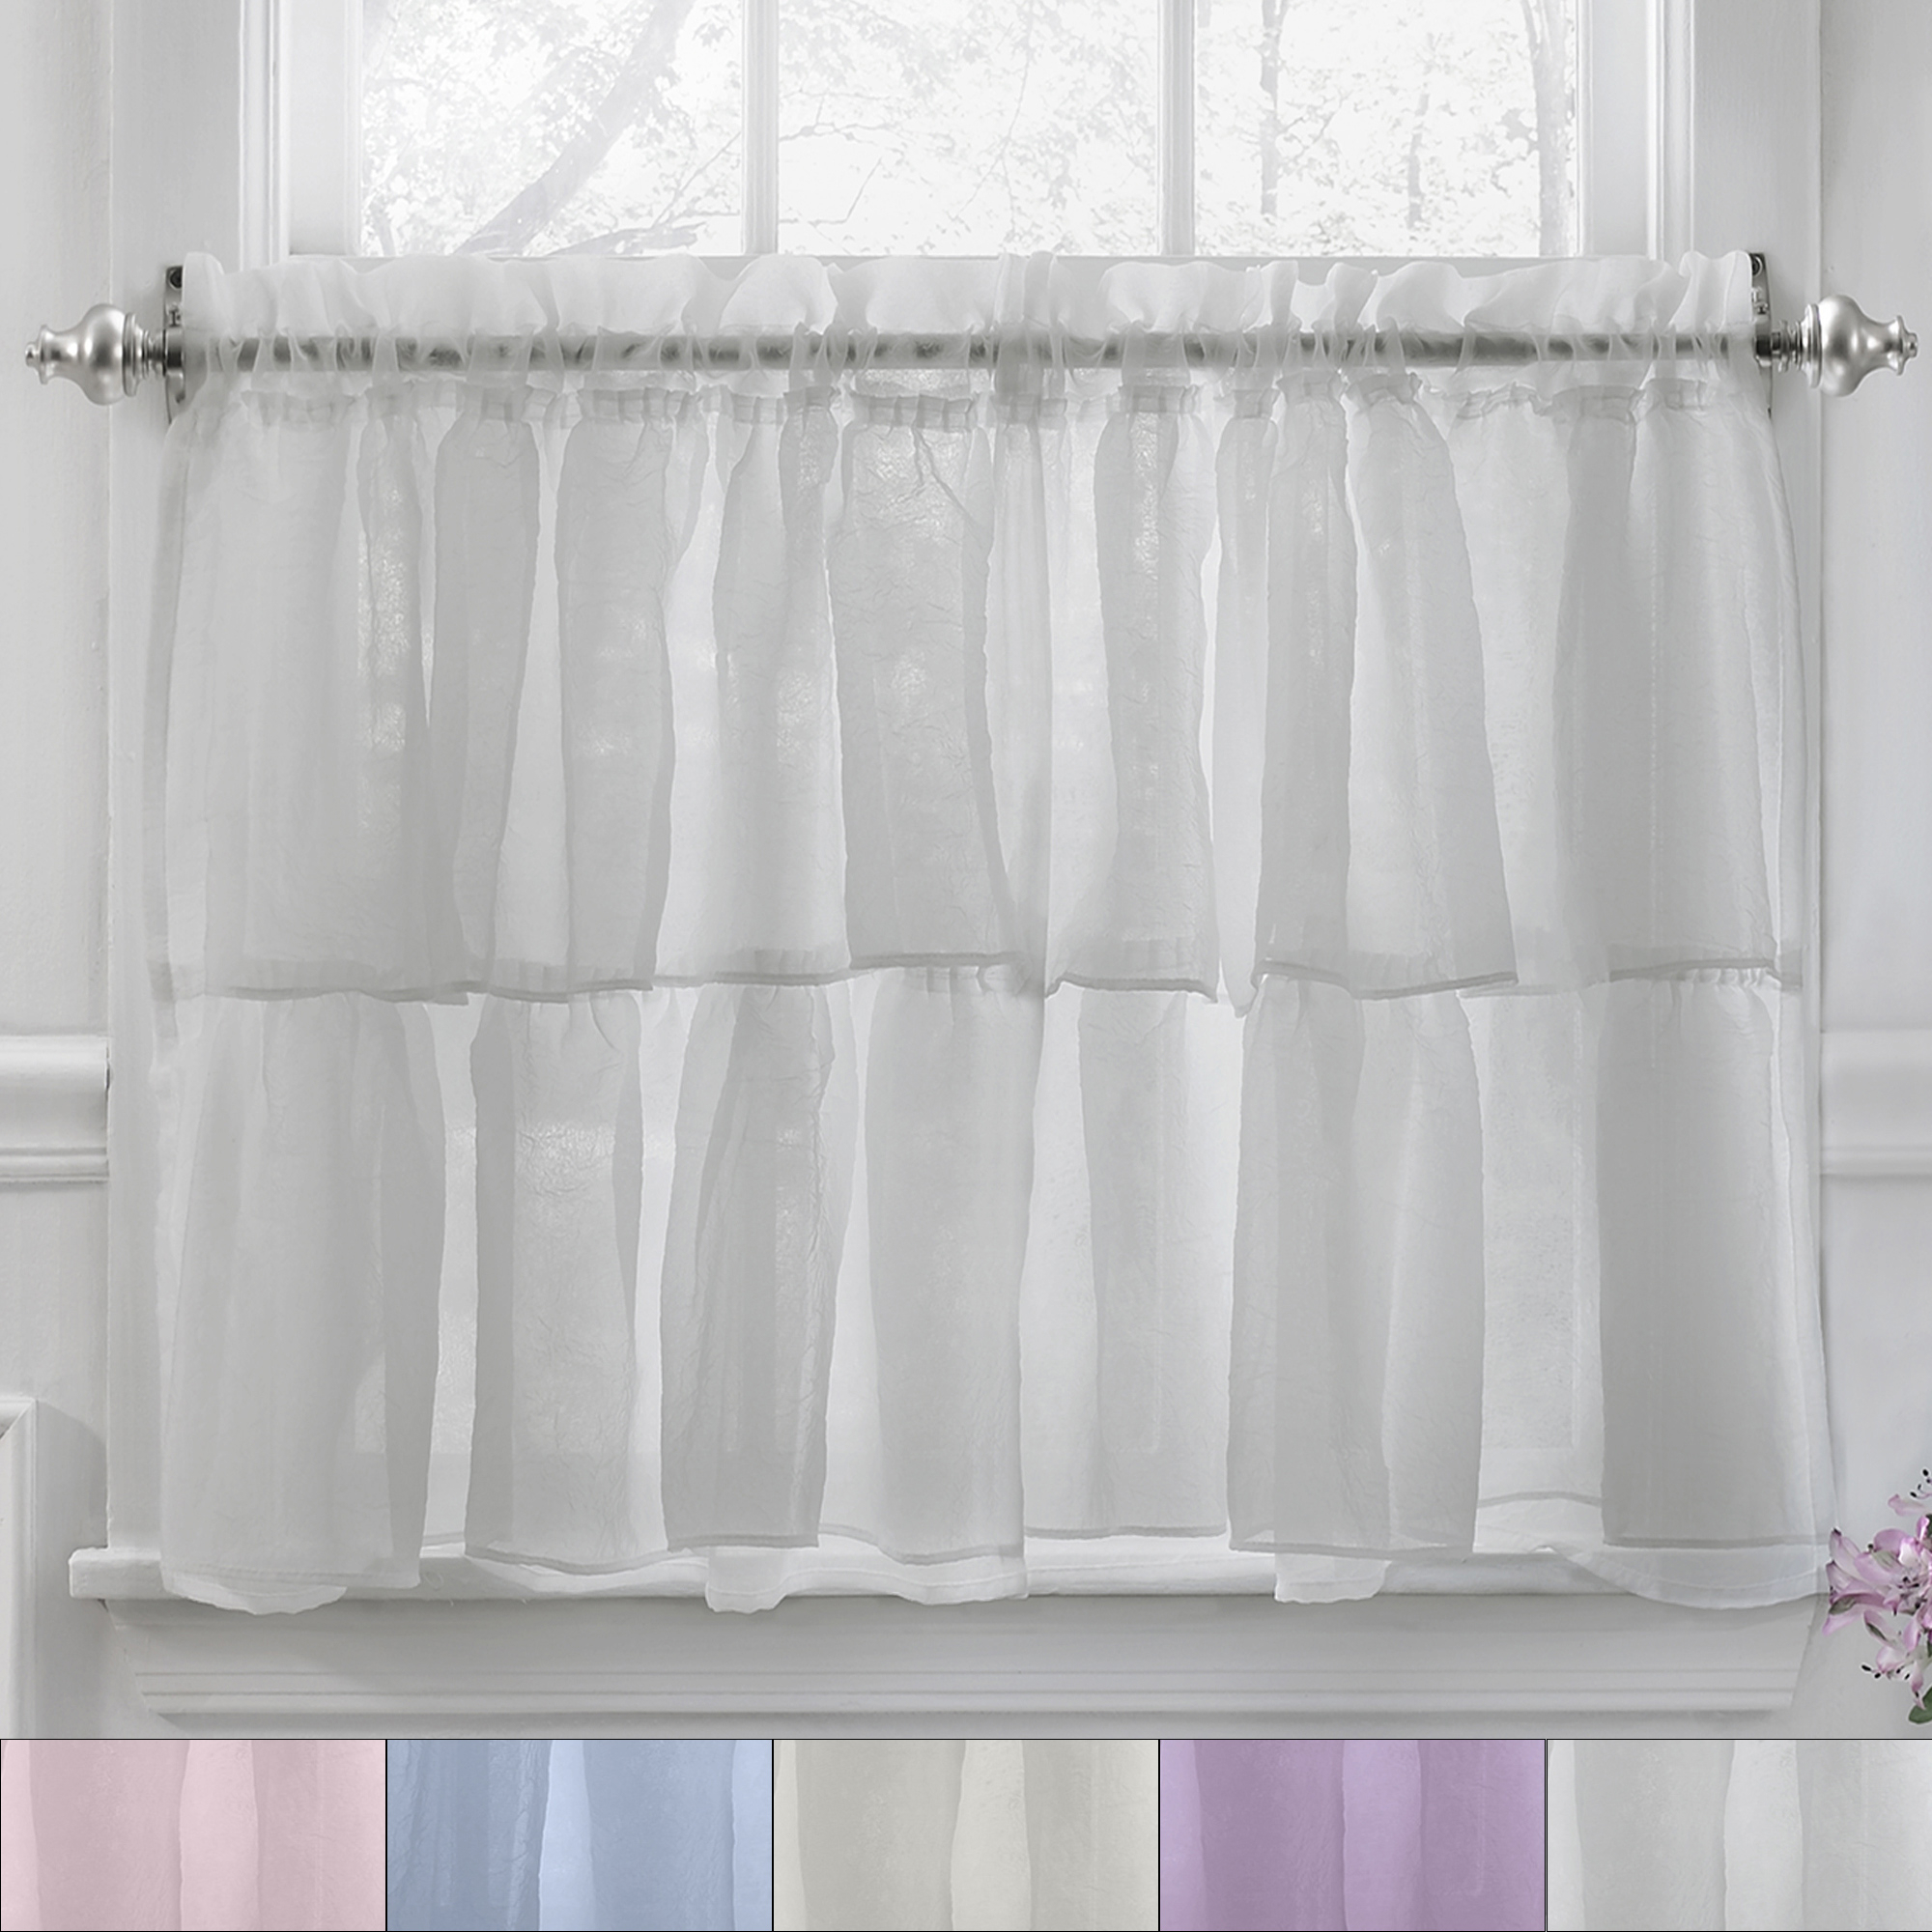 """Sheer Voile Ruffled Tier Window Curtain Panels Intended For Widely Used Details About Gypsy Crushed Voile Ruffle Kitchen Window Curtain 36"""" Tier  Pair (View 10 of 20)"""